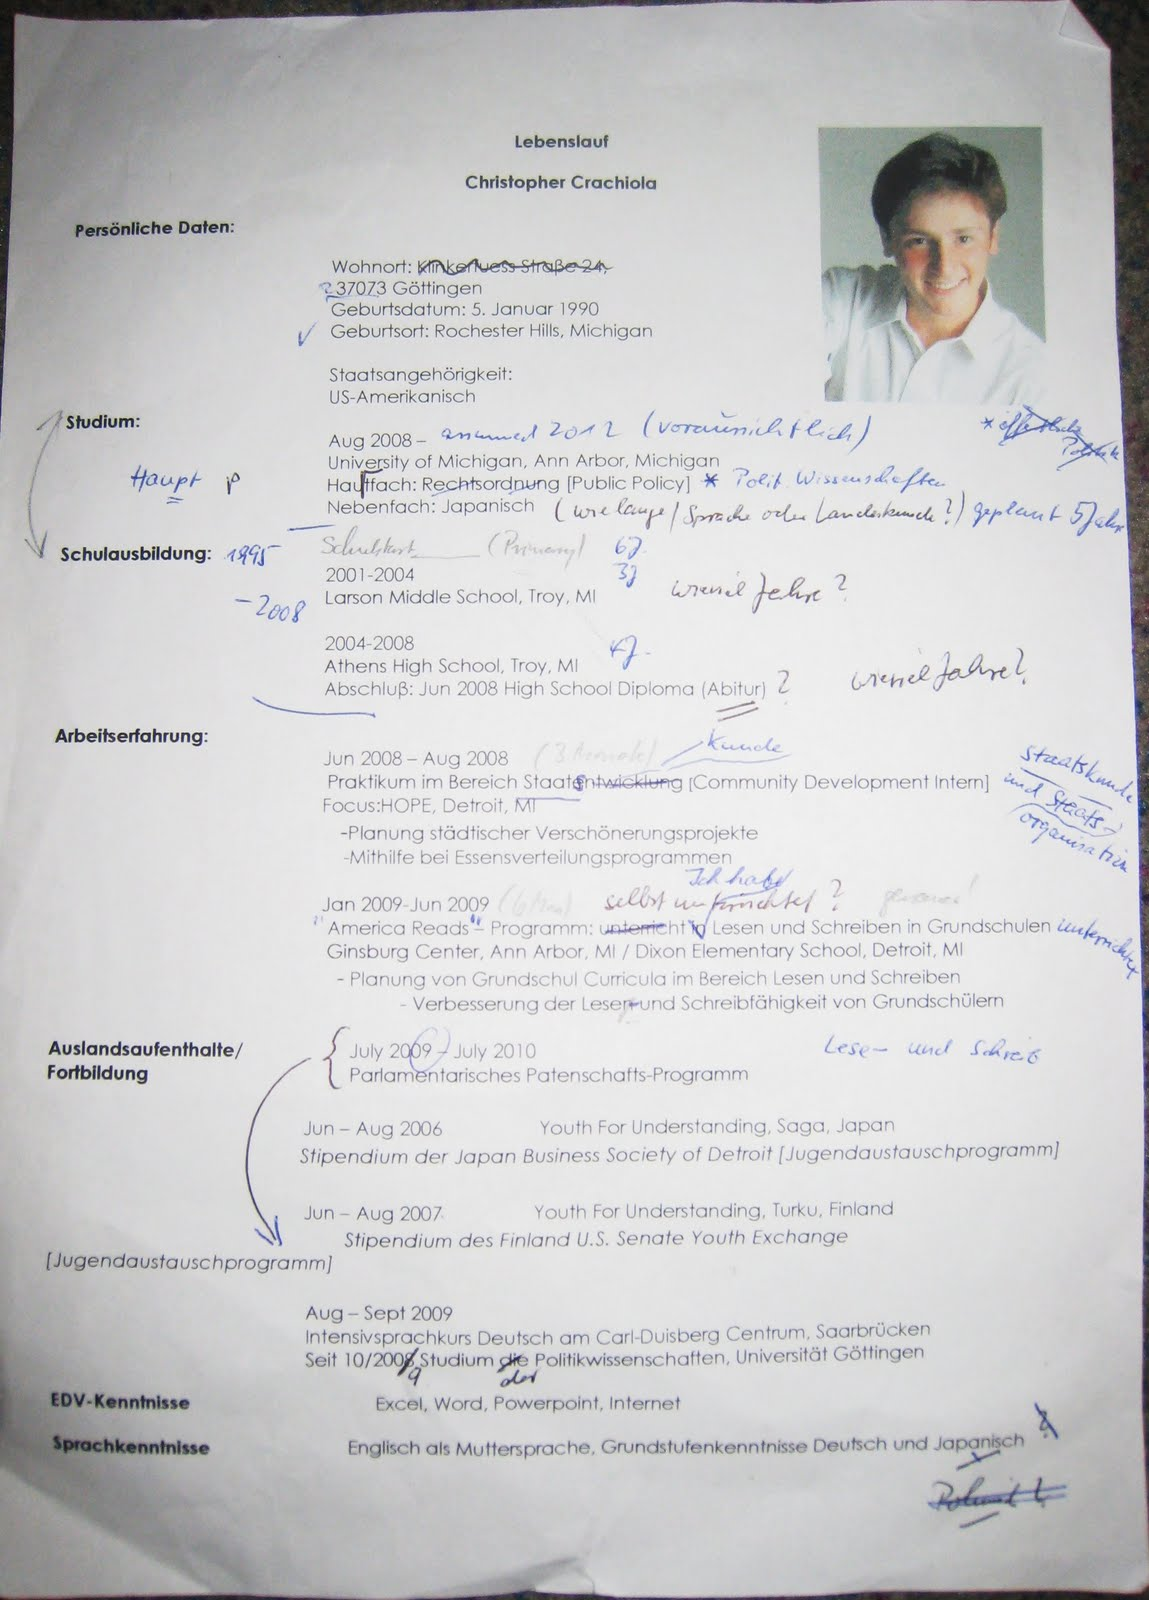 essay about myself in german language How to write an essay in italian, even if you barely speak the language june 12 it would force me to improve my language skills pick up some of the key vocabulary, and generally orientate myself it was also a fantastic place to get italian writing tips i quickly figured out that.